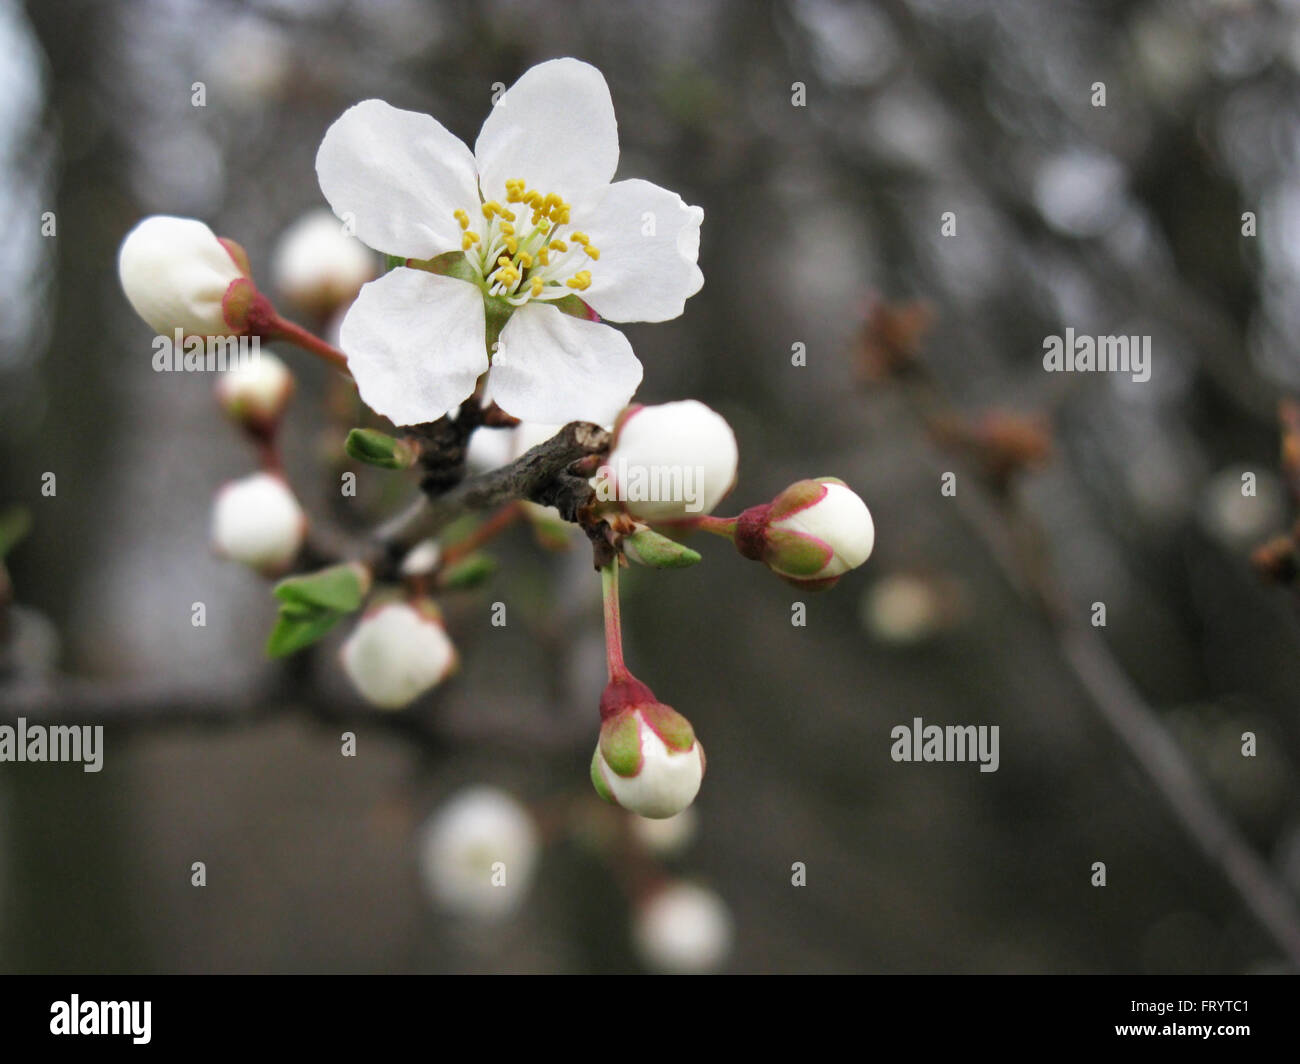 Fruit tree blossoms in spring. - Stock Image